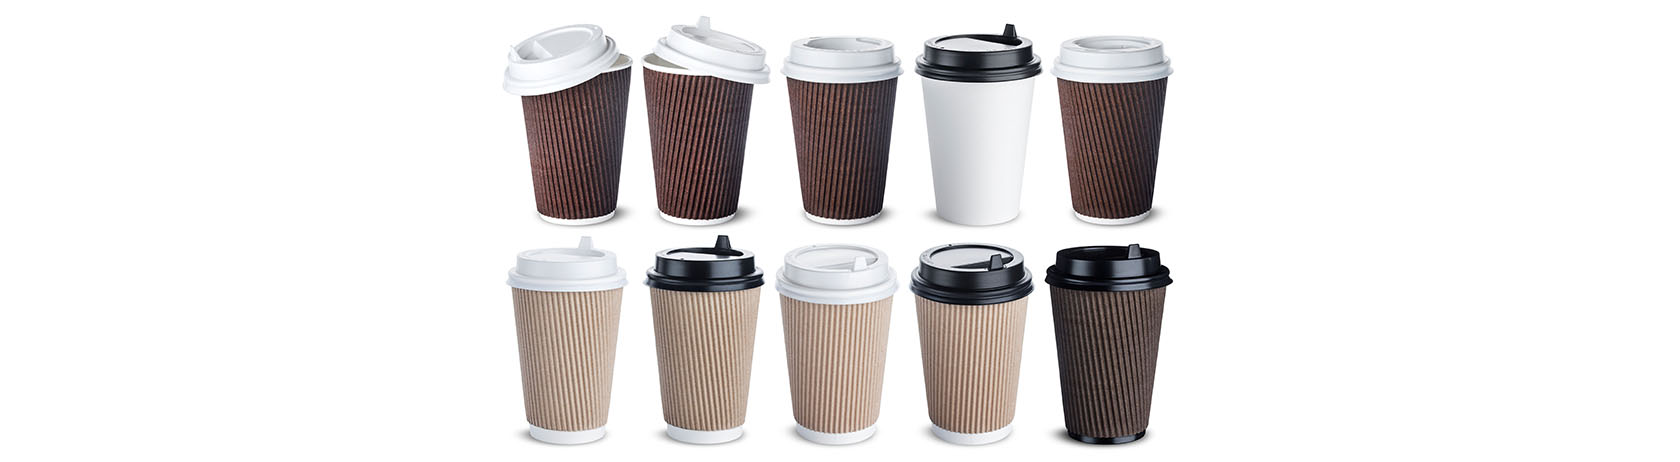 The search for plastic alternatives creating more waste than success | Knowledge Centre | Essentra Components UK